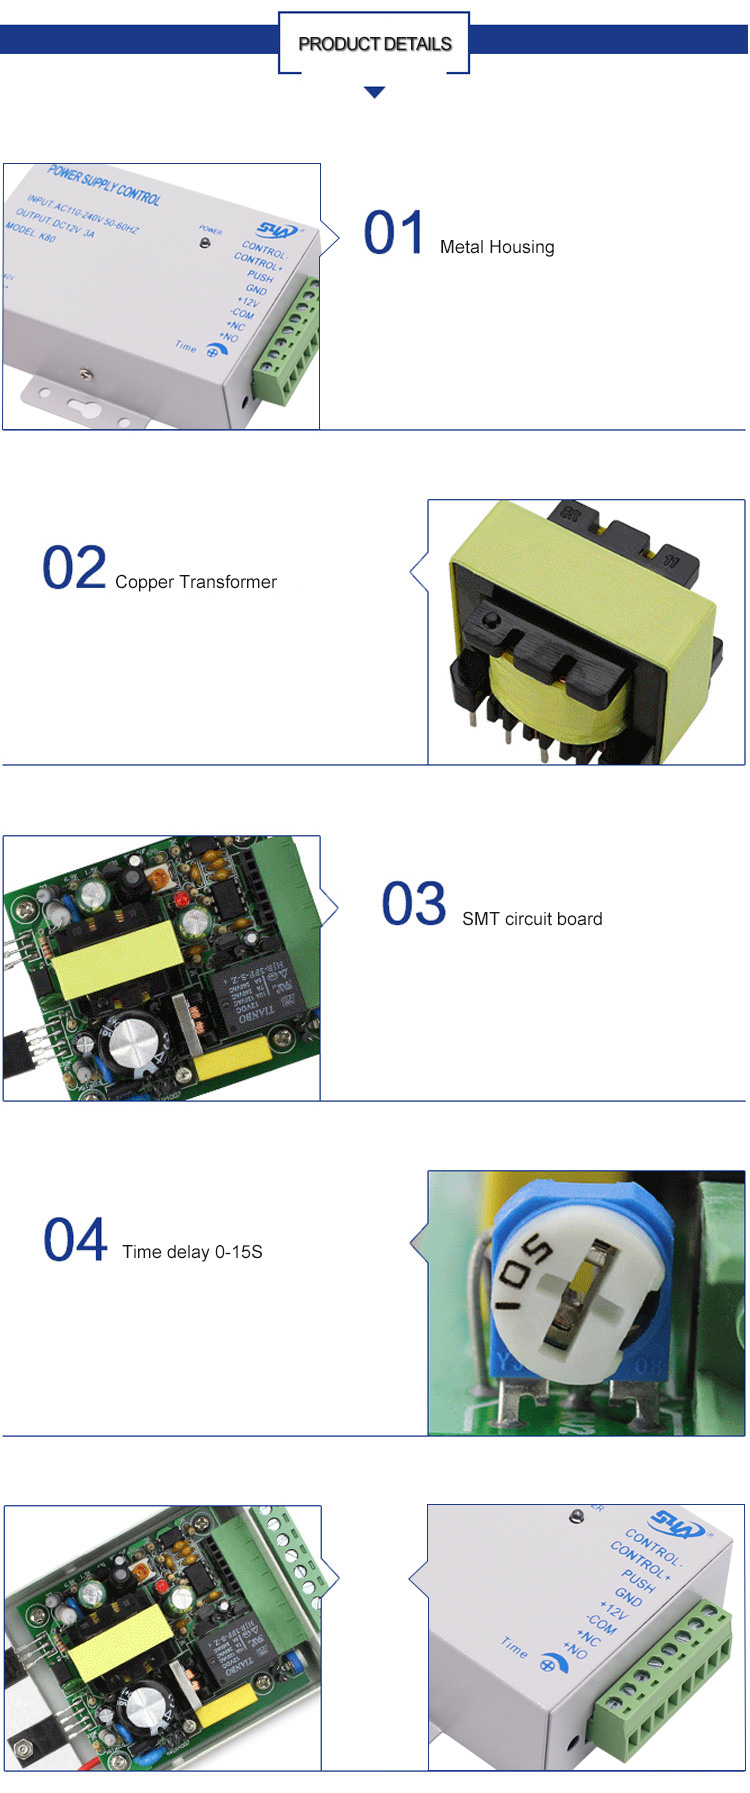 Access Power supply-1